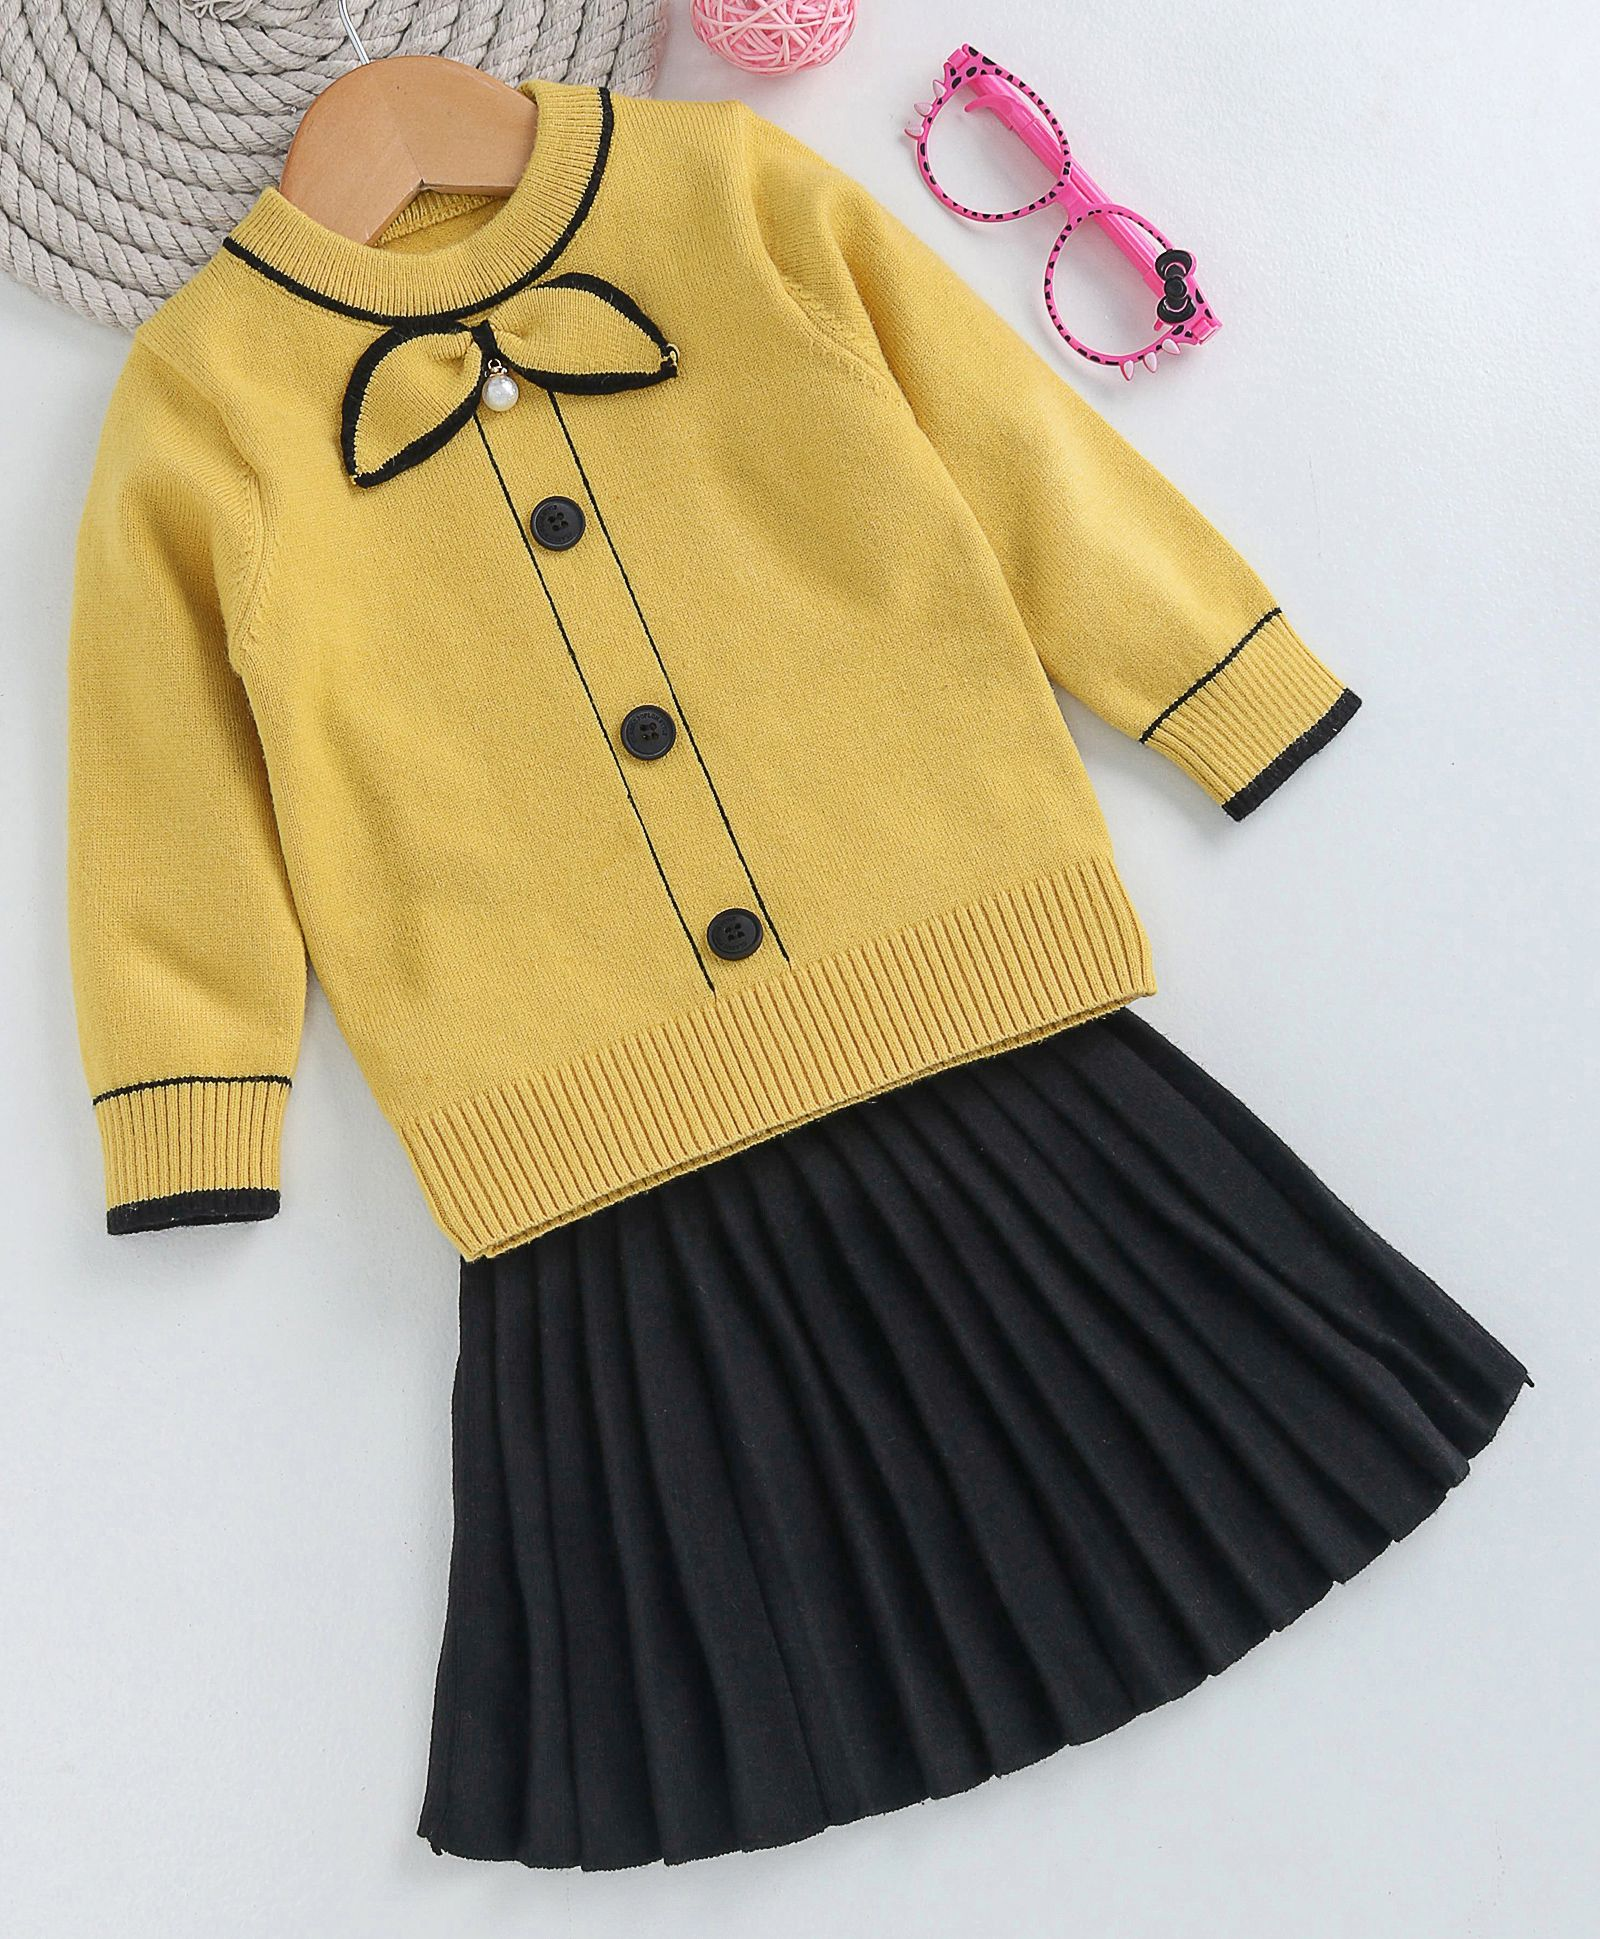 0af777ba9a1a Buy Kookie Kids Full Sleeves Top With Pleated Skirt Yellow & Black ...